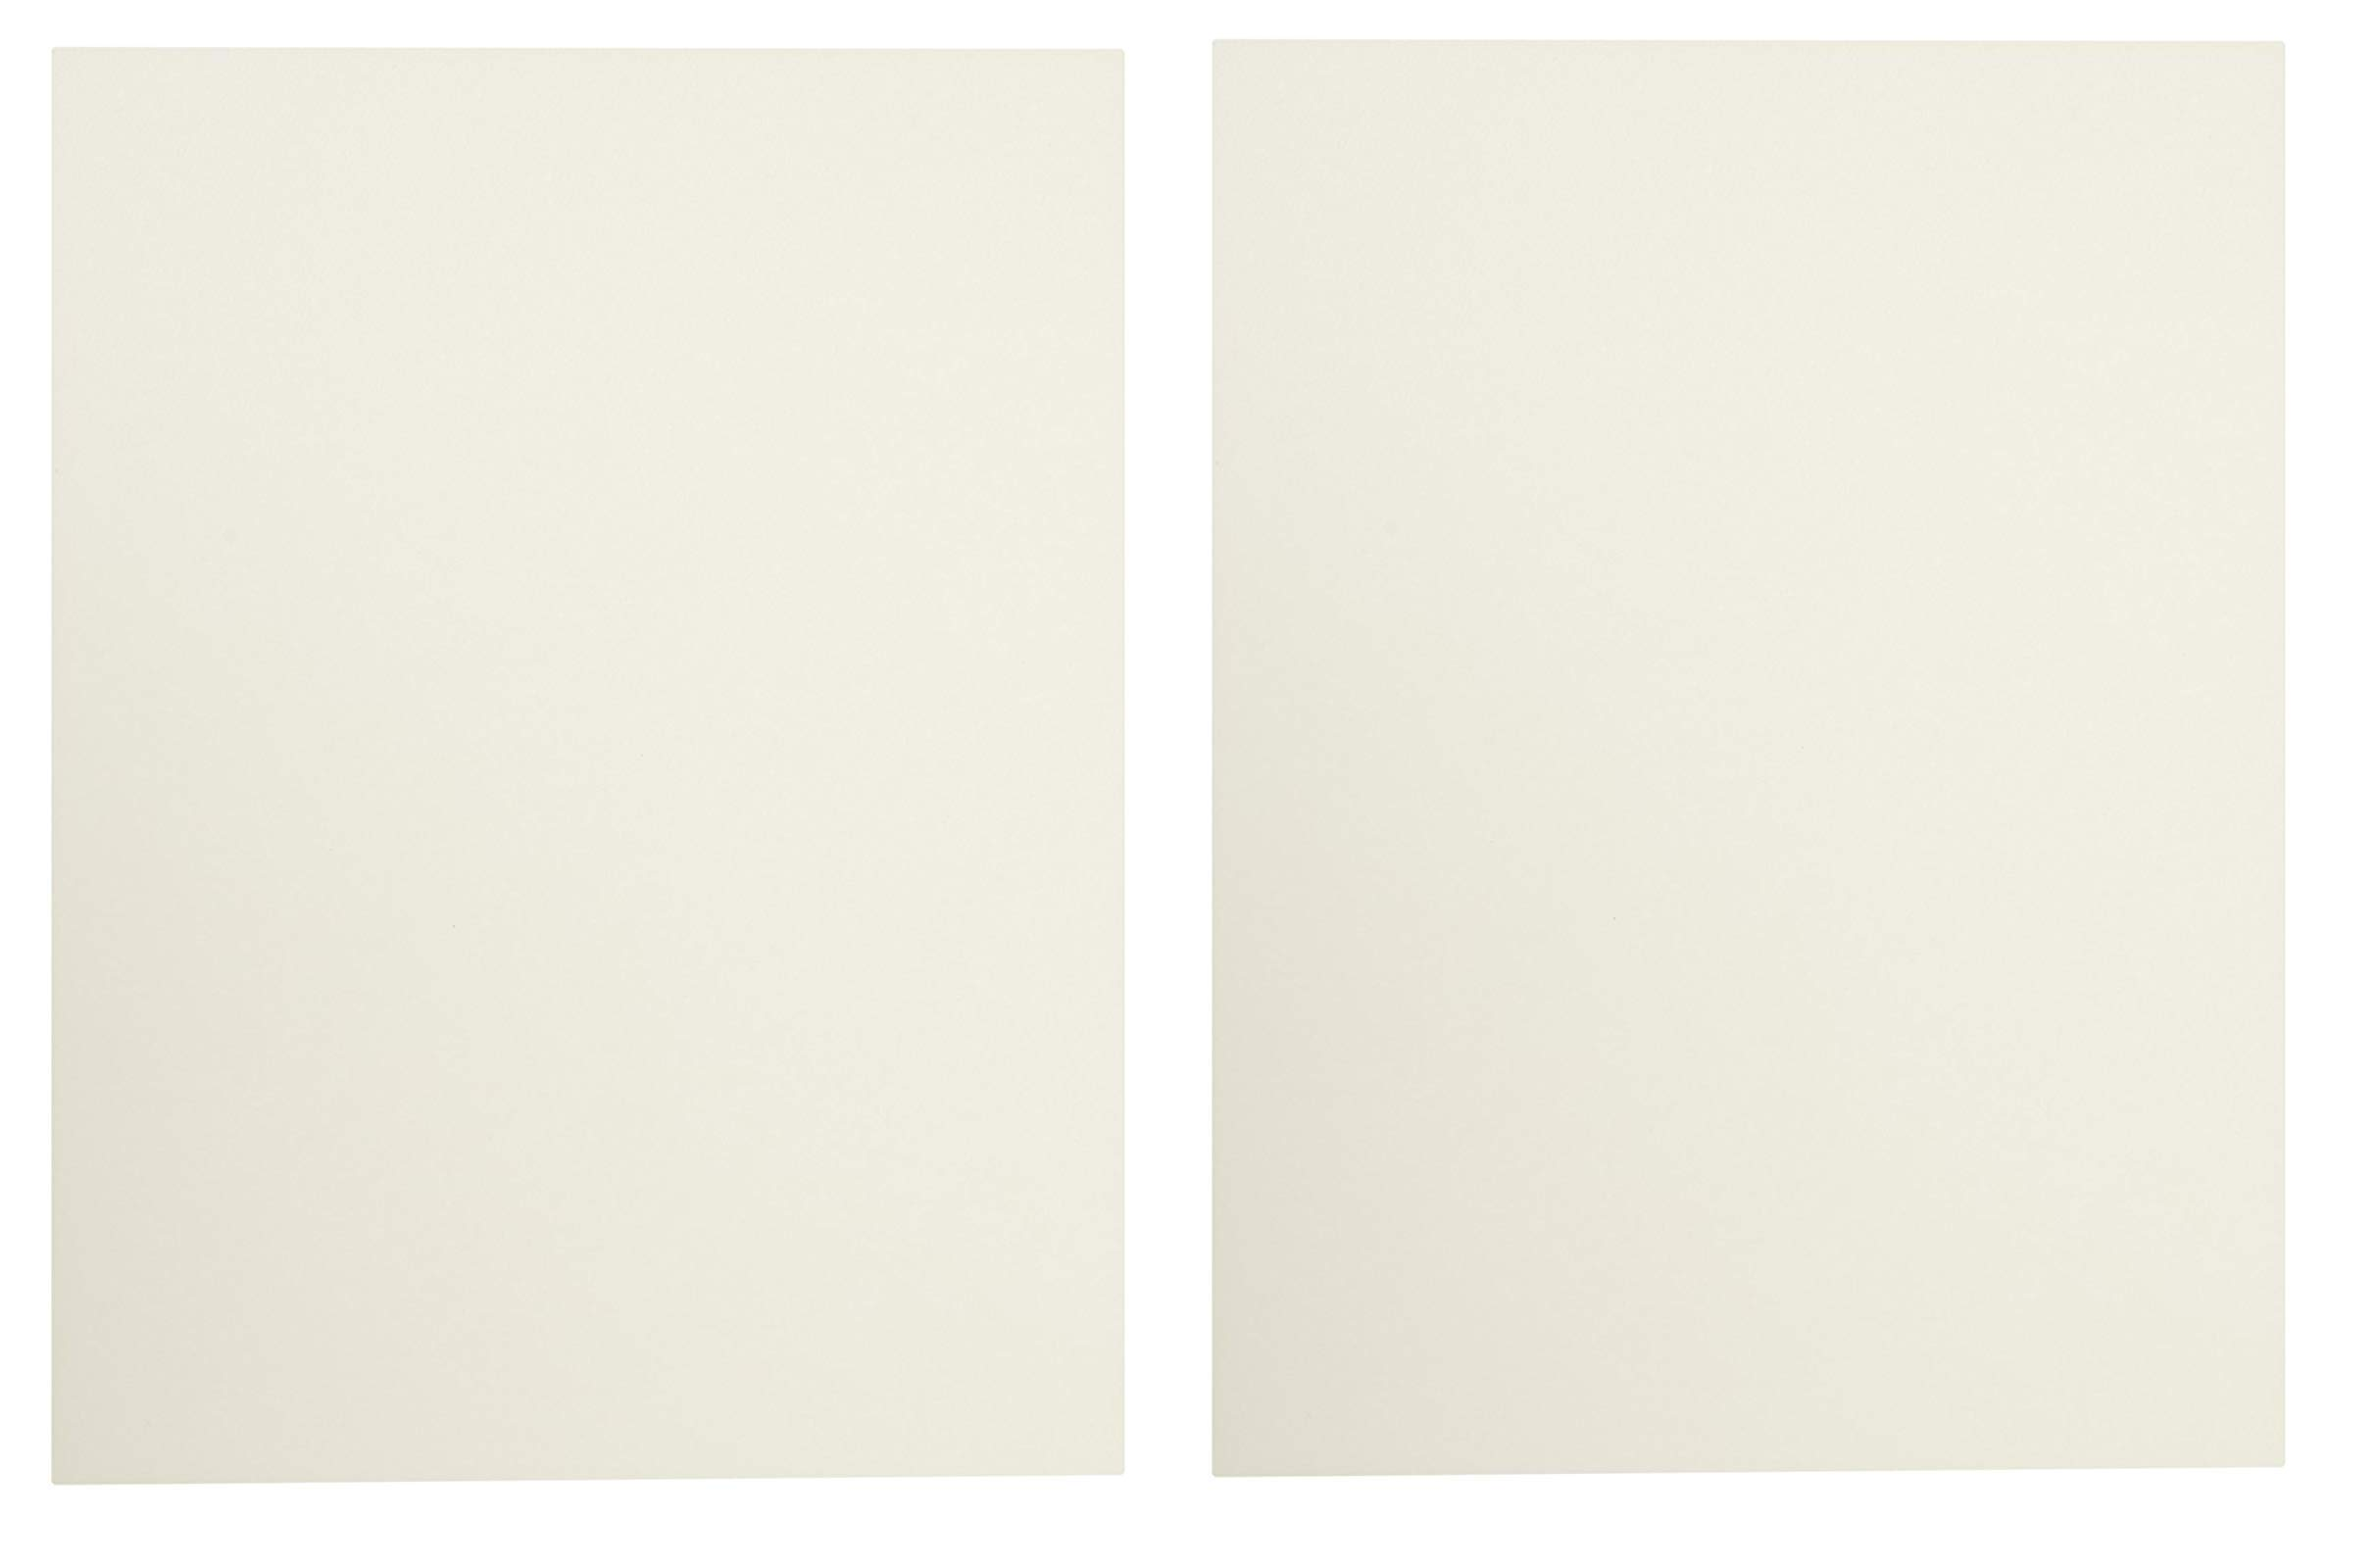 Sax Watercolor Paper Beginner Paper, 9 x 12 Inches, Natural White, Pack of 100 (2-Pack)